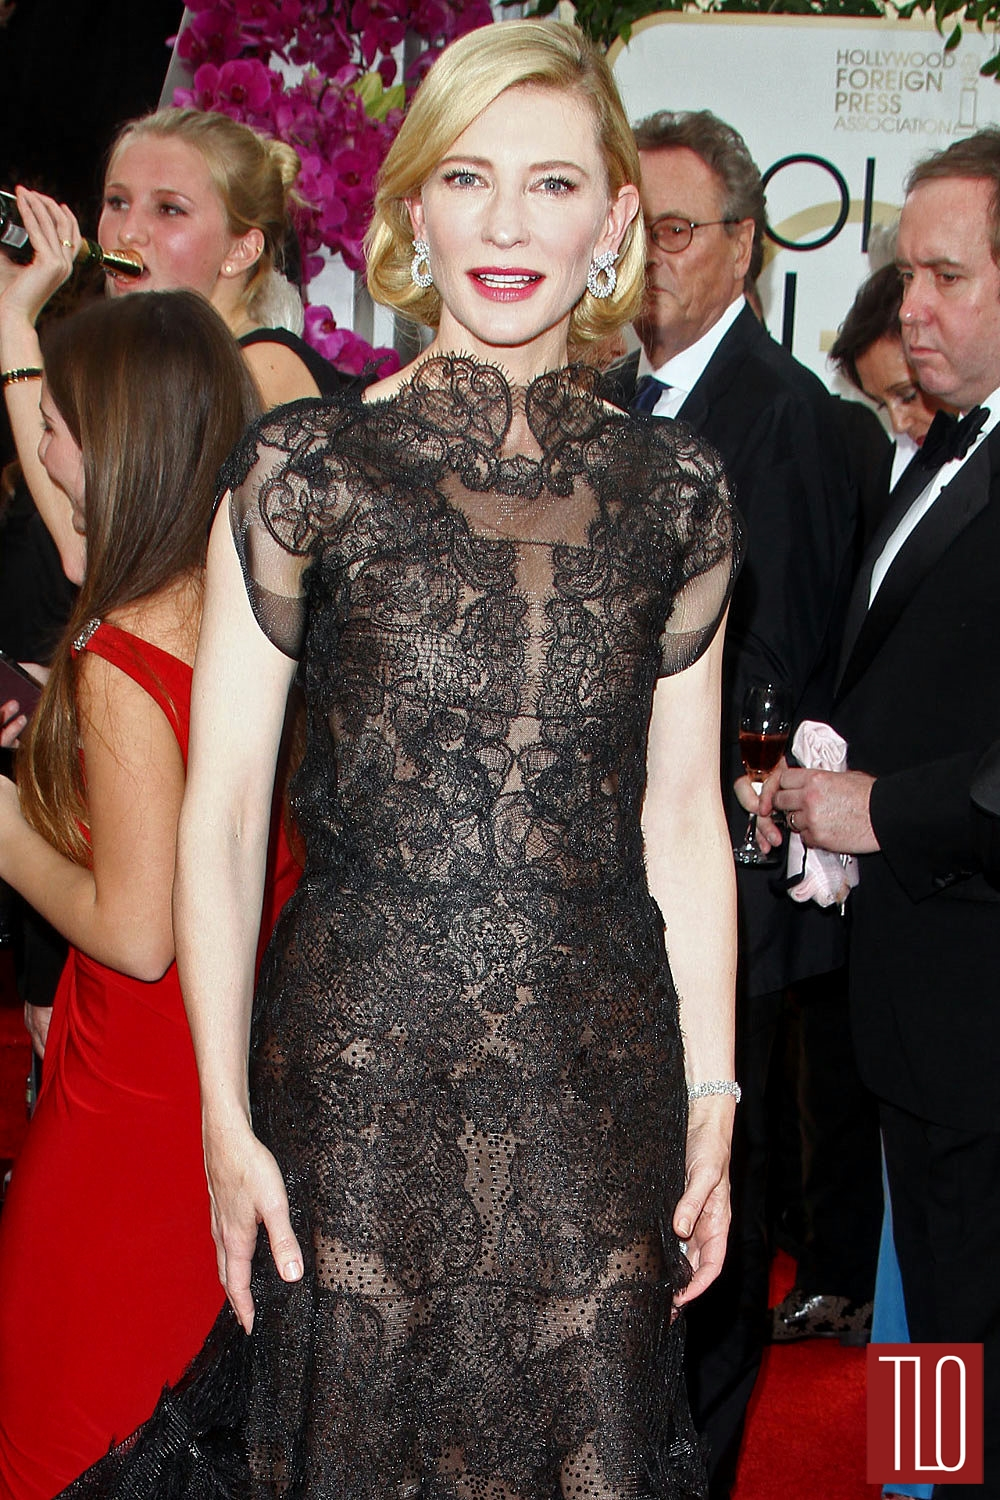 Cate-Blanchett-Armani-Prive-2014-Golden-Globe-Awards-Tom-Lorenzo-Site-1.jpg